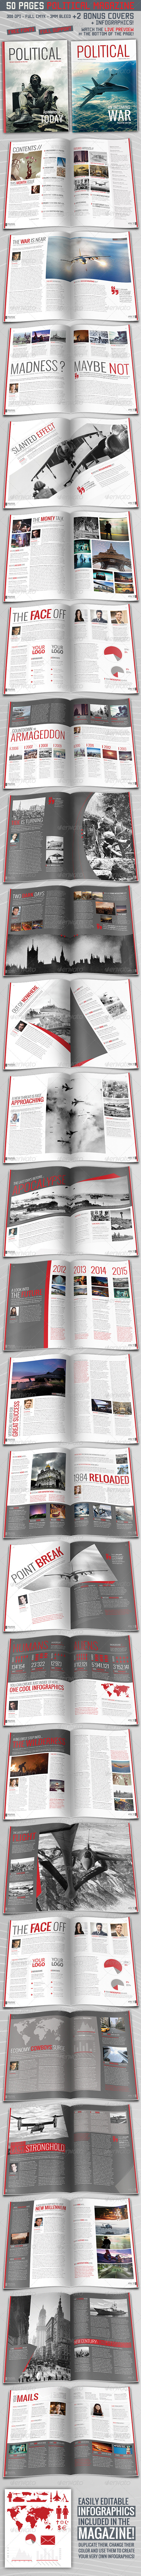 Political Magazine 50 Pages+2 Covers+Infographics - Magazines Print Templates